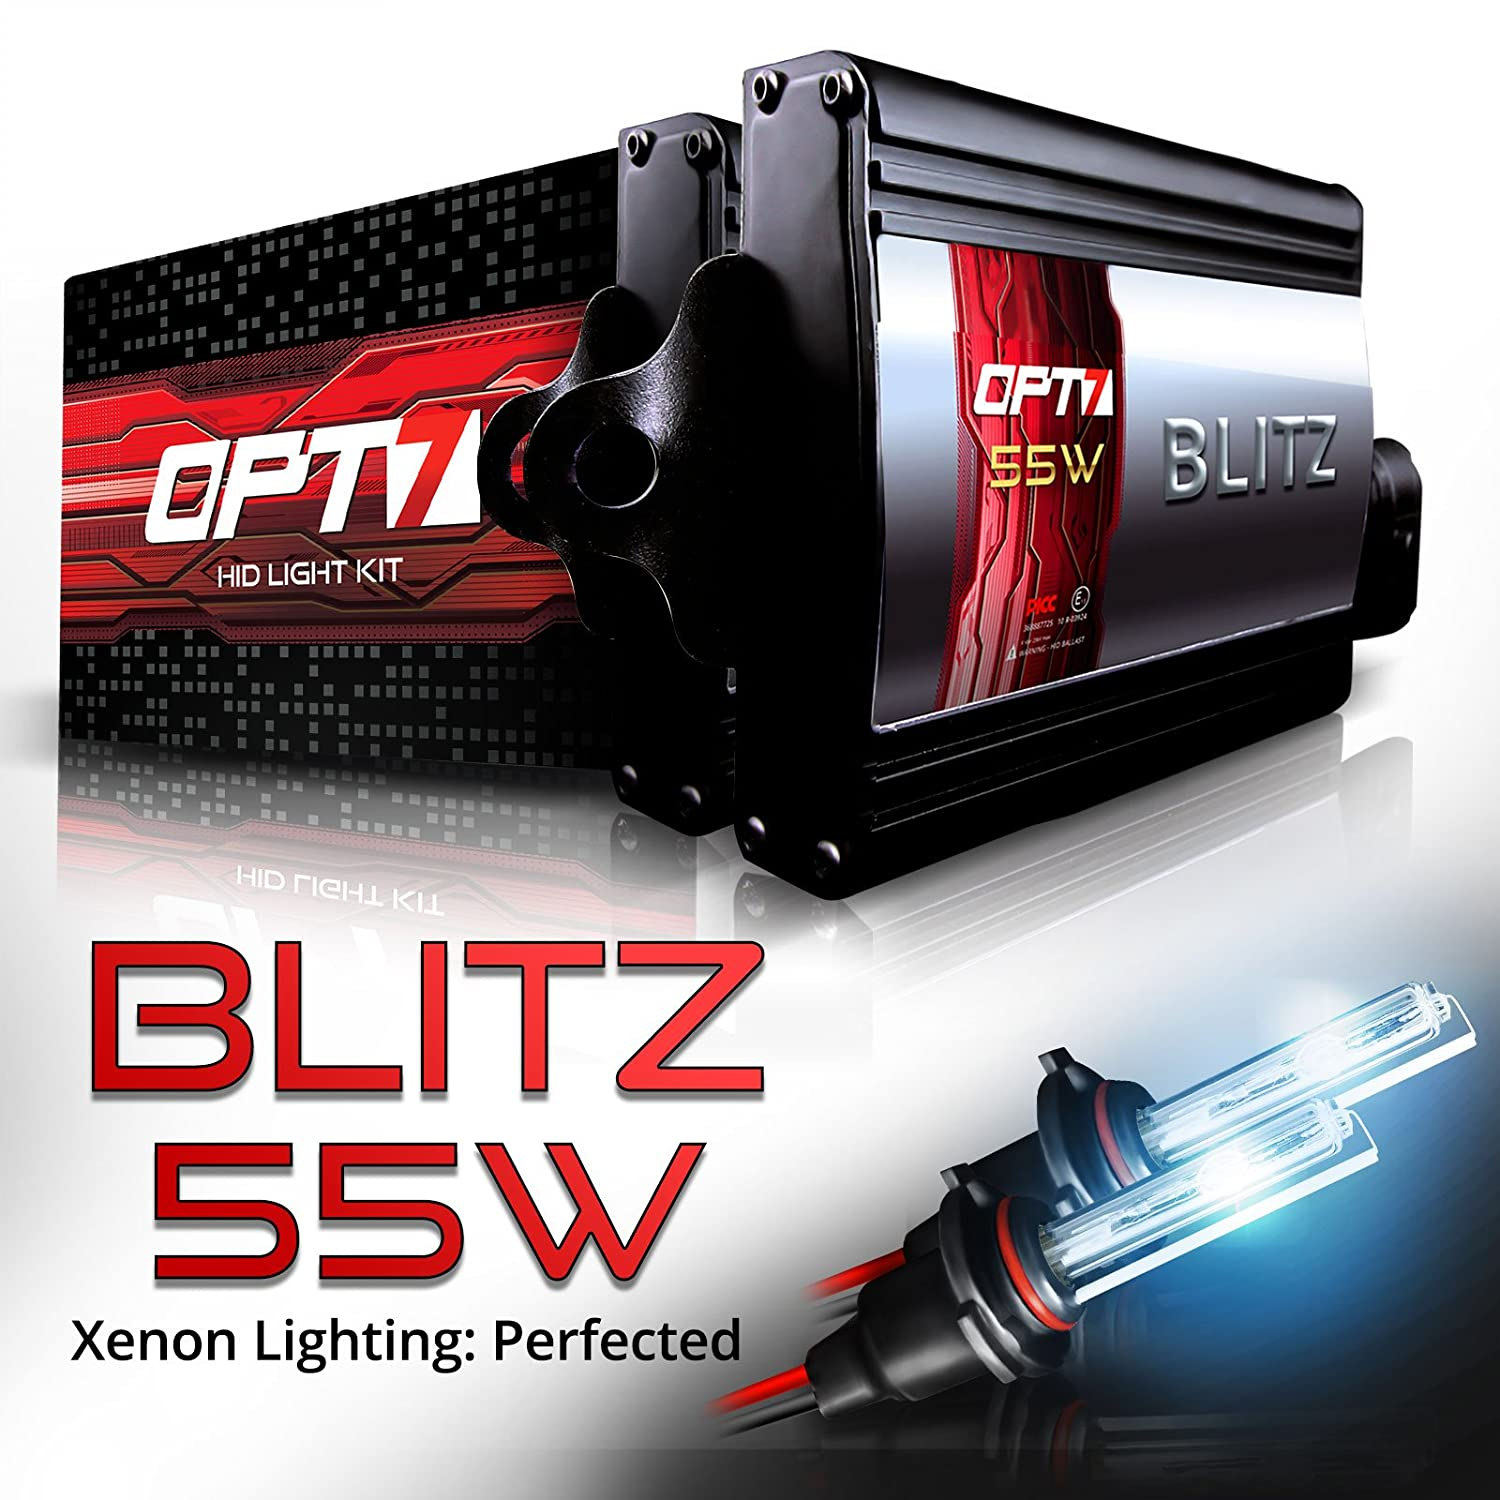 Amazon.com: OPT7 Blitz 55w HID Xenon Conversion Kit 5x Brighter - 4x Longer  Life - All Colors and Sizes Simple DIY Install - 2 Yr Warranty - Bulbs and  ...